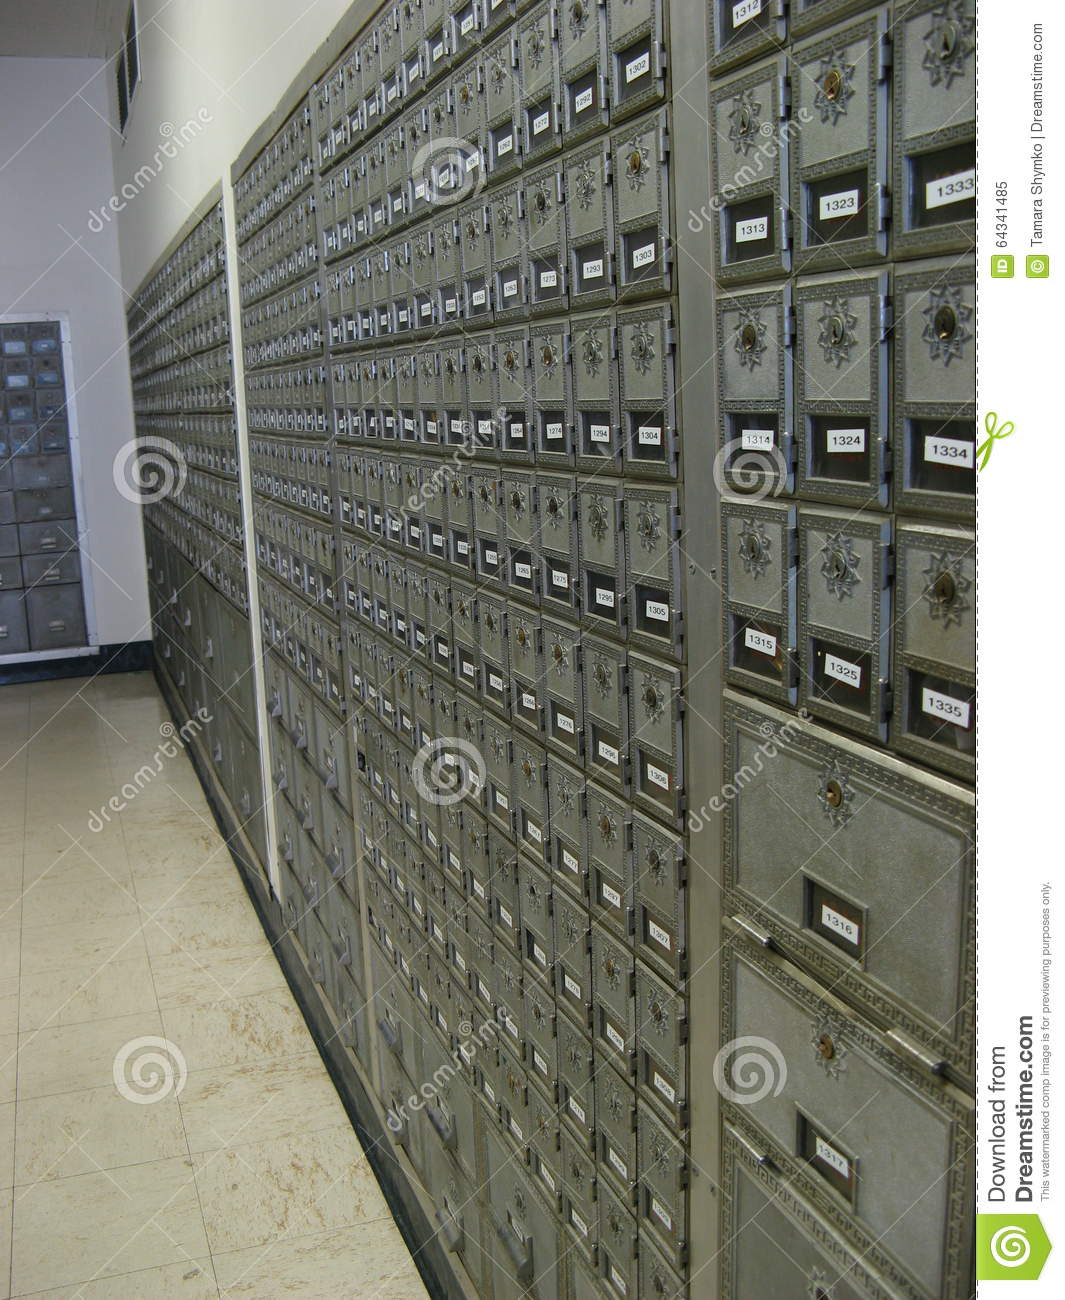 Download Post Office Boxes stock image. Image of office, gray - 64341485